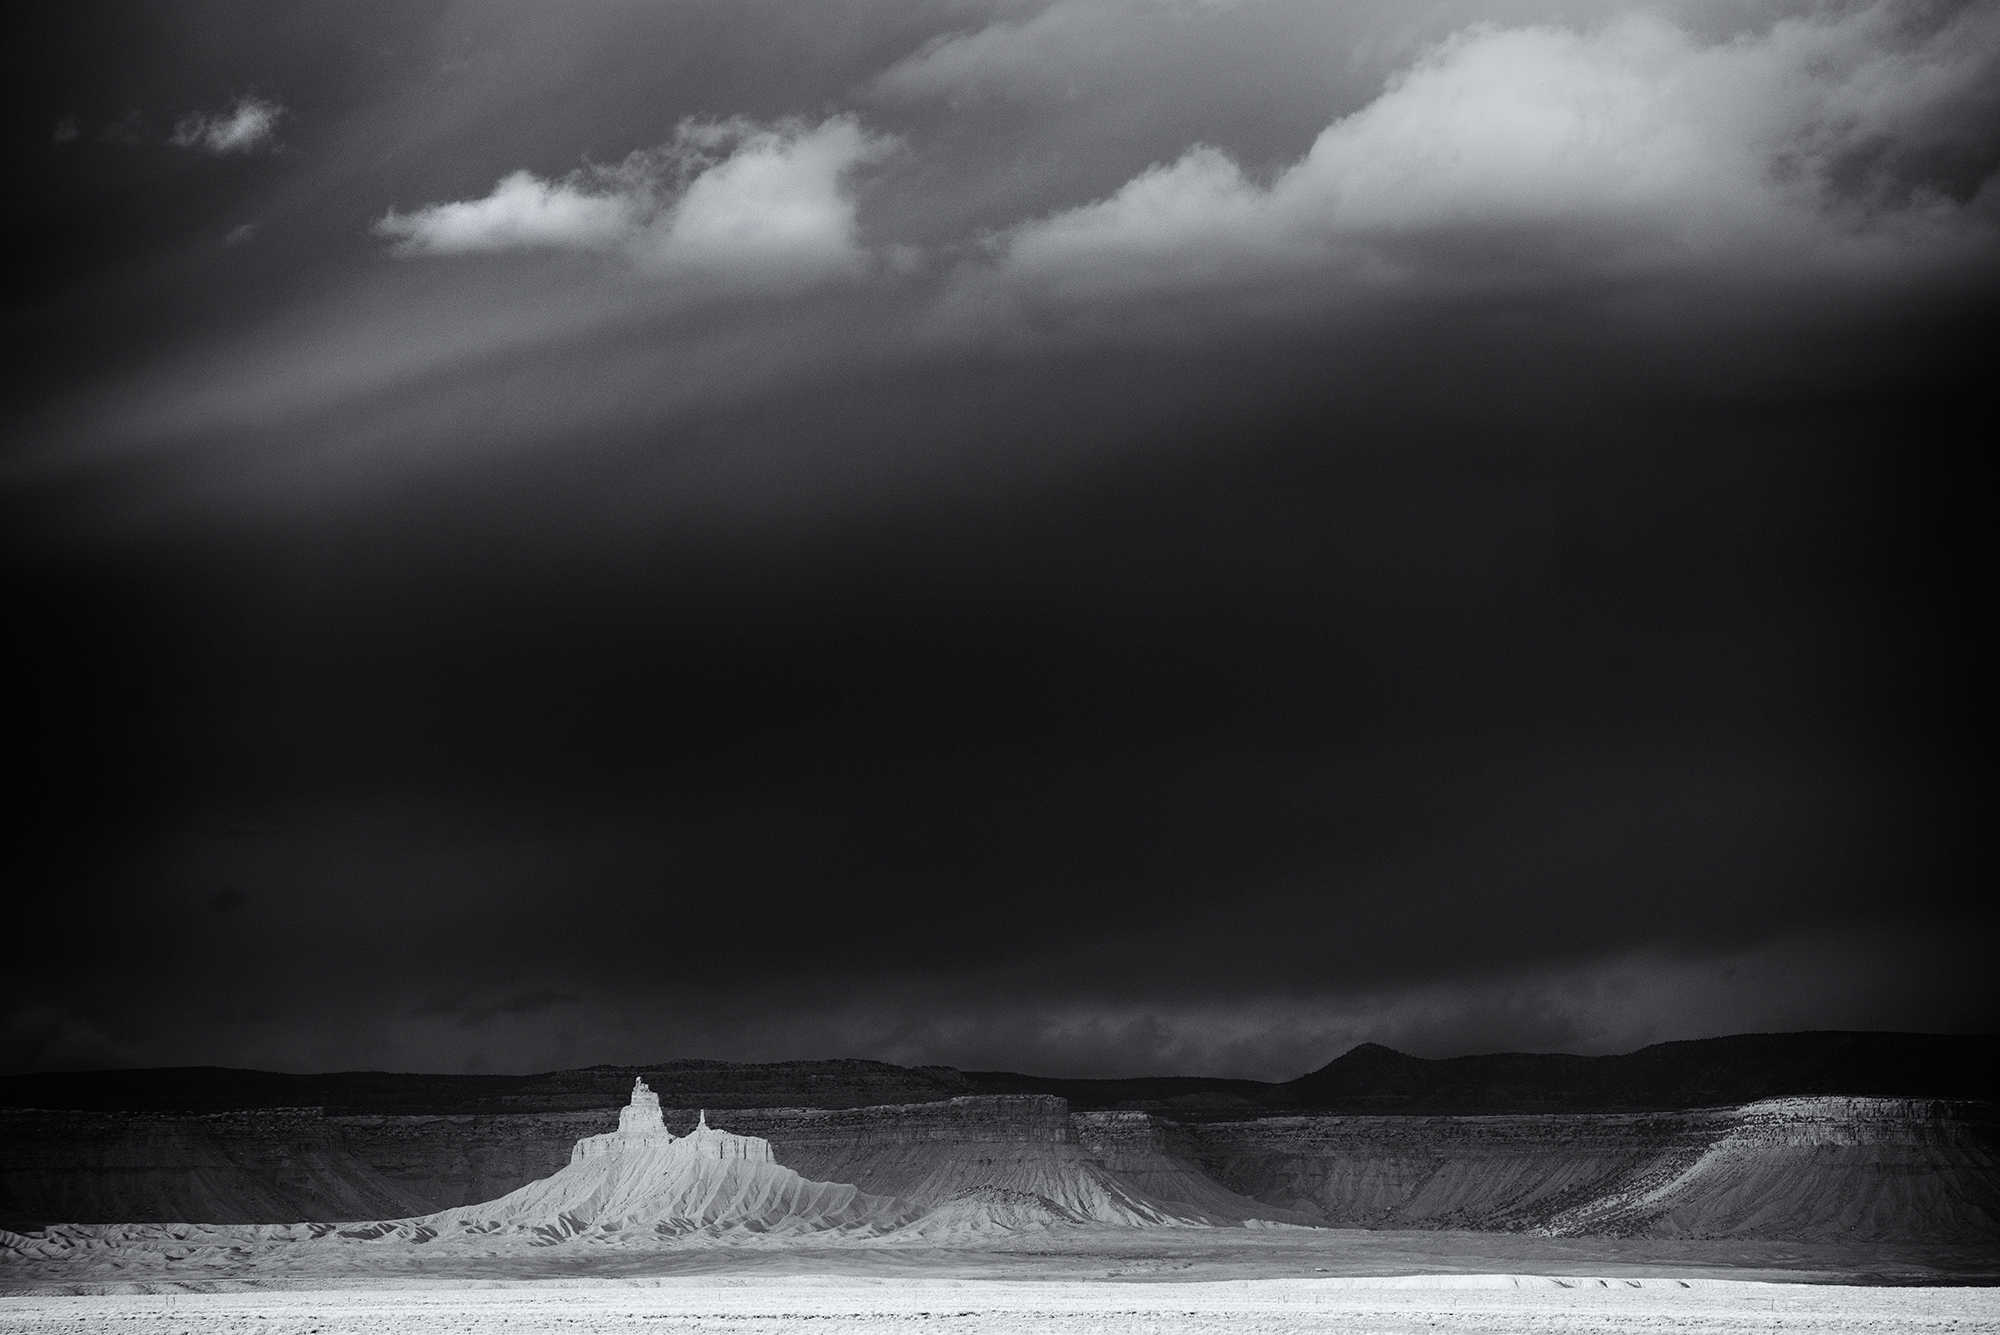 Storm Over West Ute Mesa. Near Cortez, Colorado, 2016